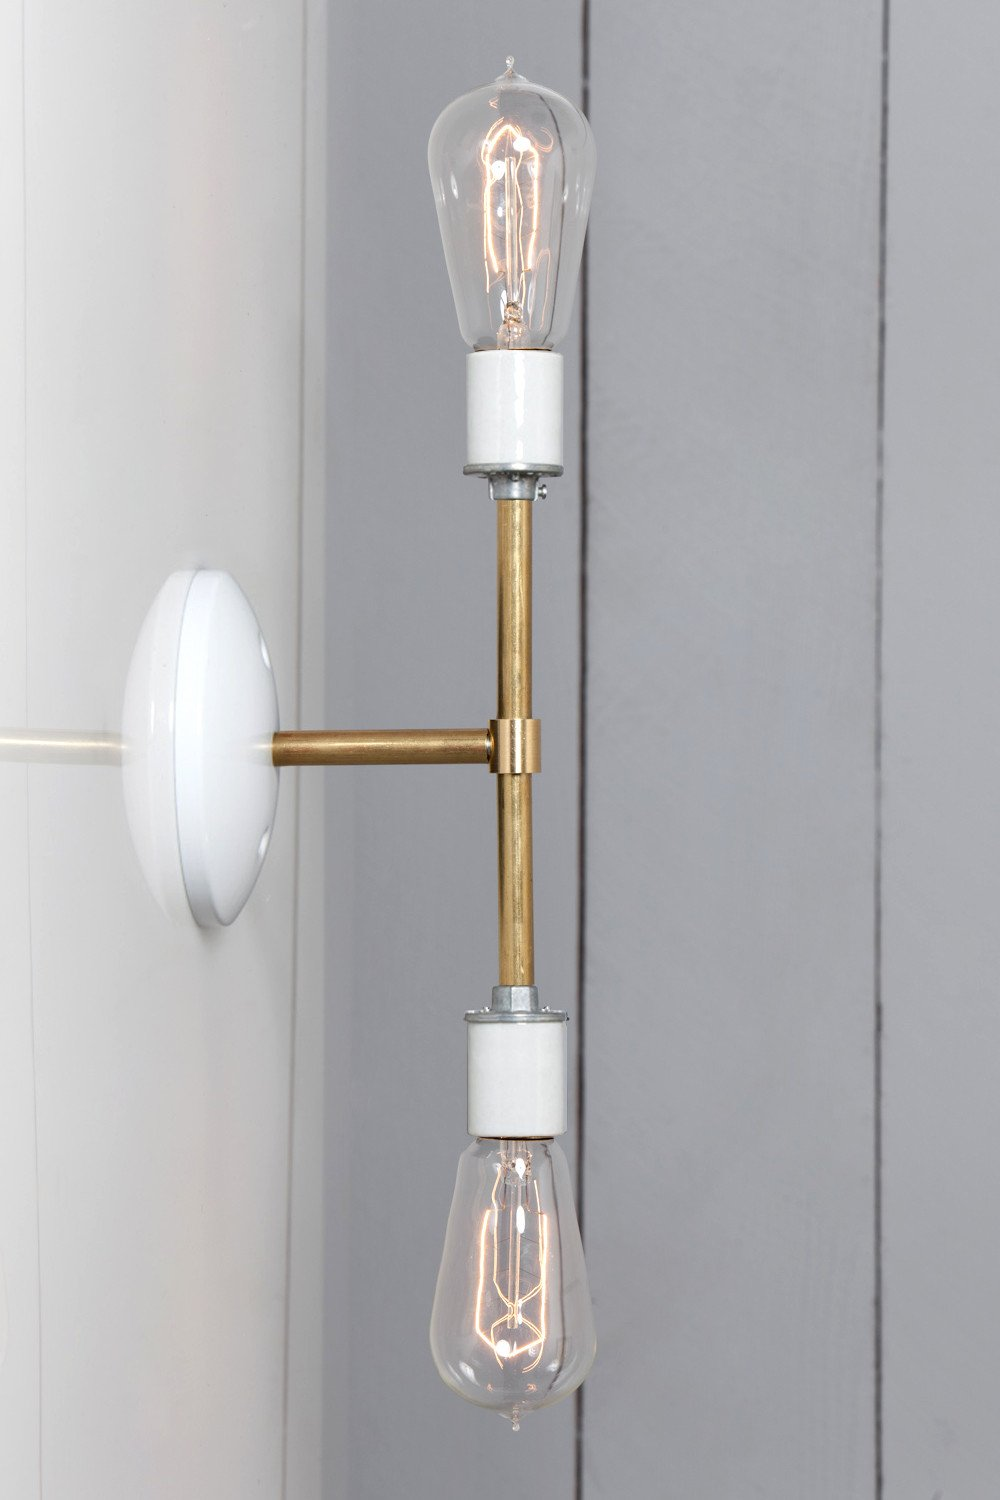 BRASS WALL LIGHT - DOUBLE BARE BULB LAMP